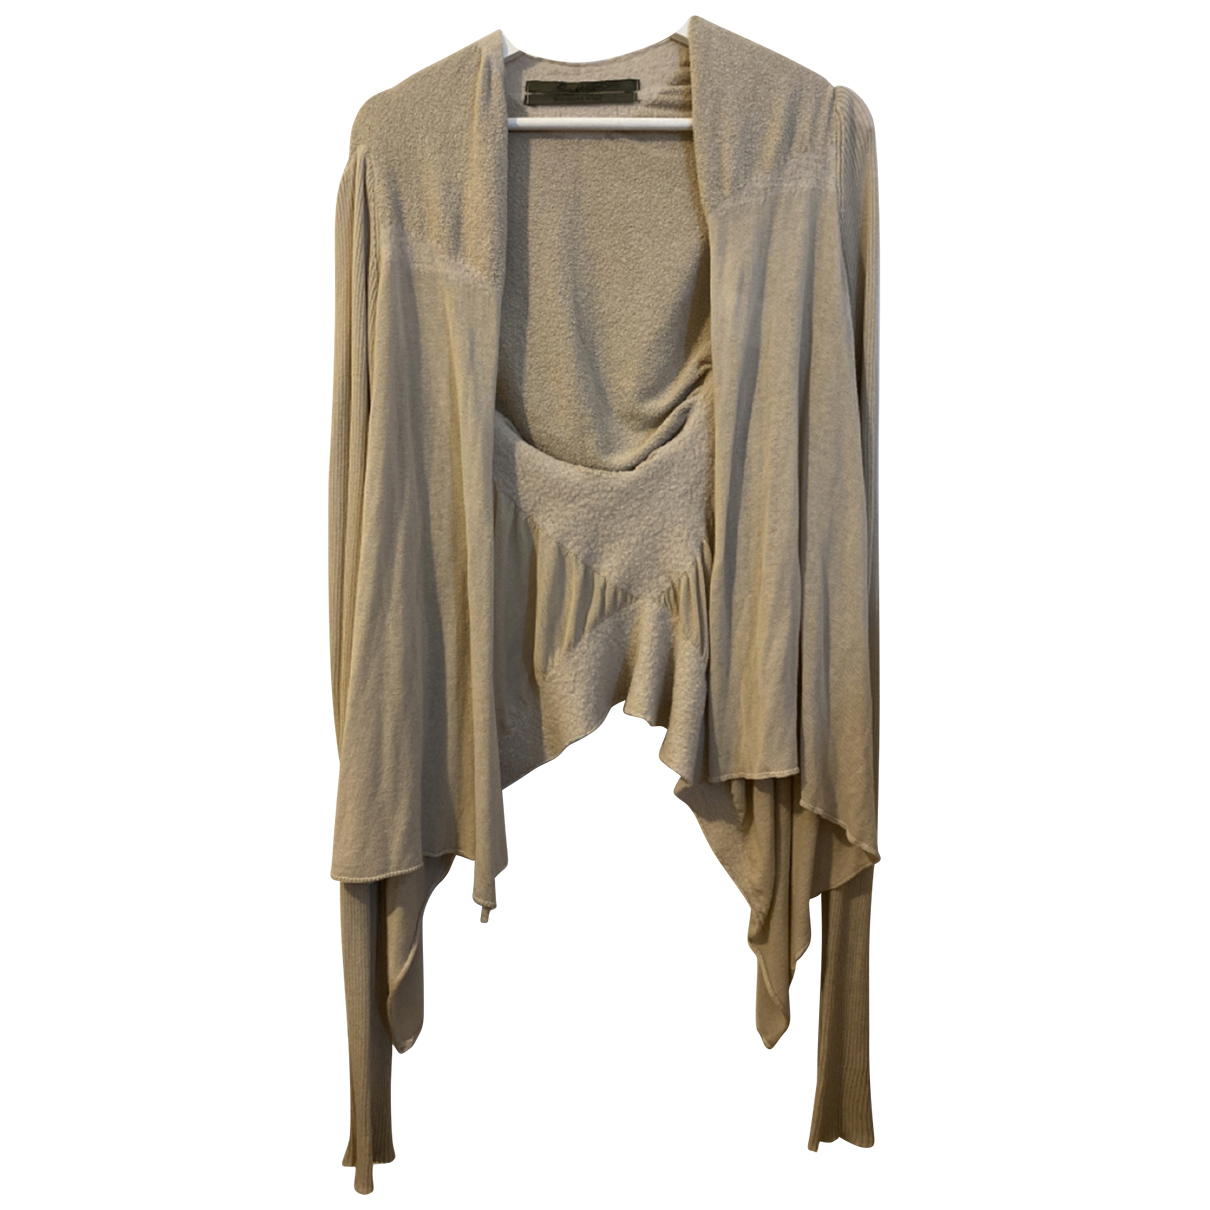 Rick Owens N Beige Cotton Knitwear & Sweatshirts for Men L International